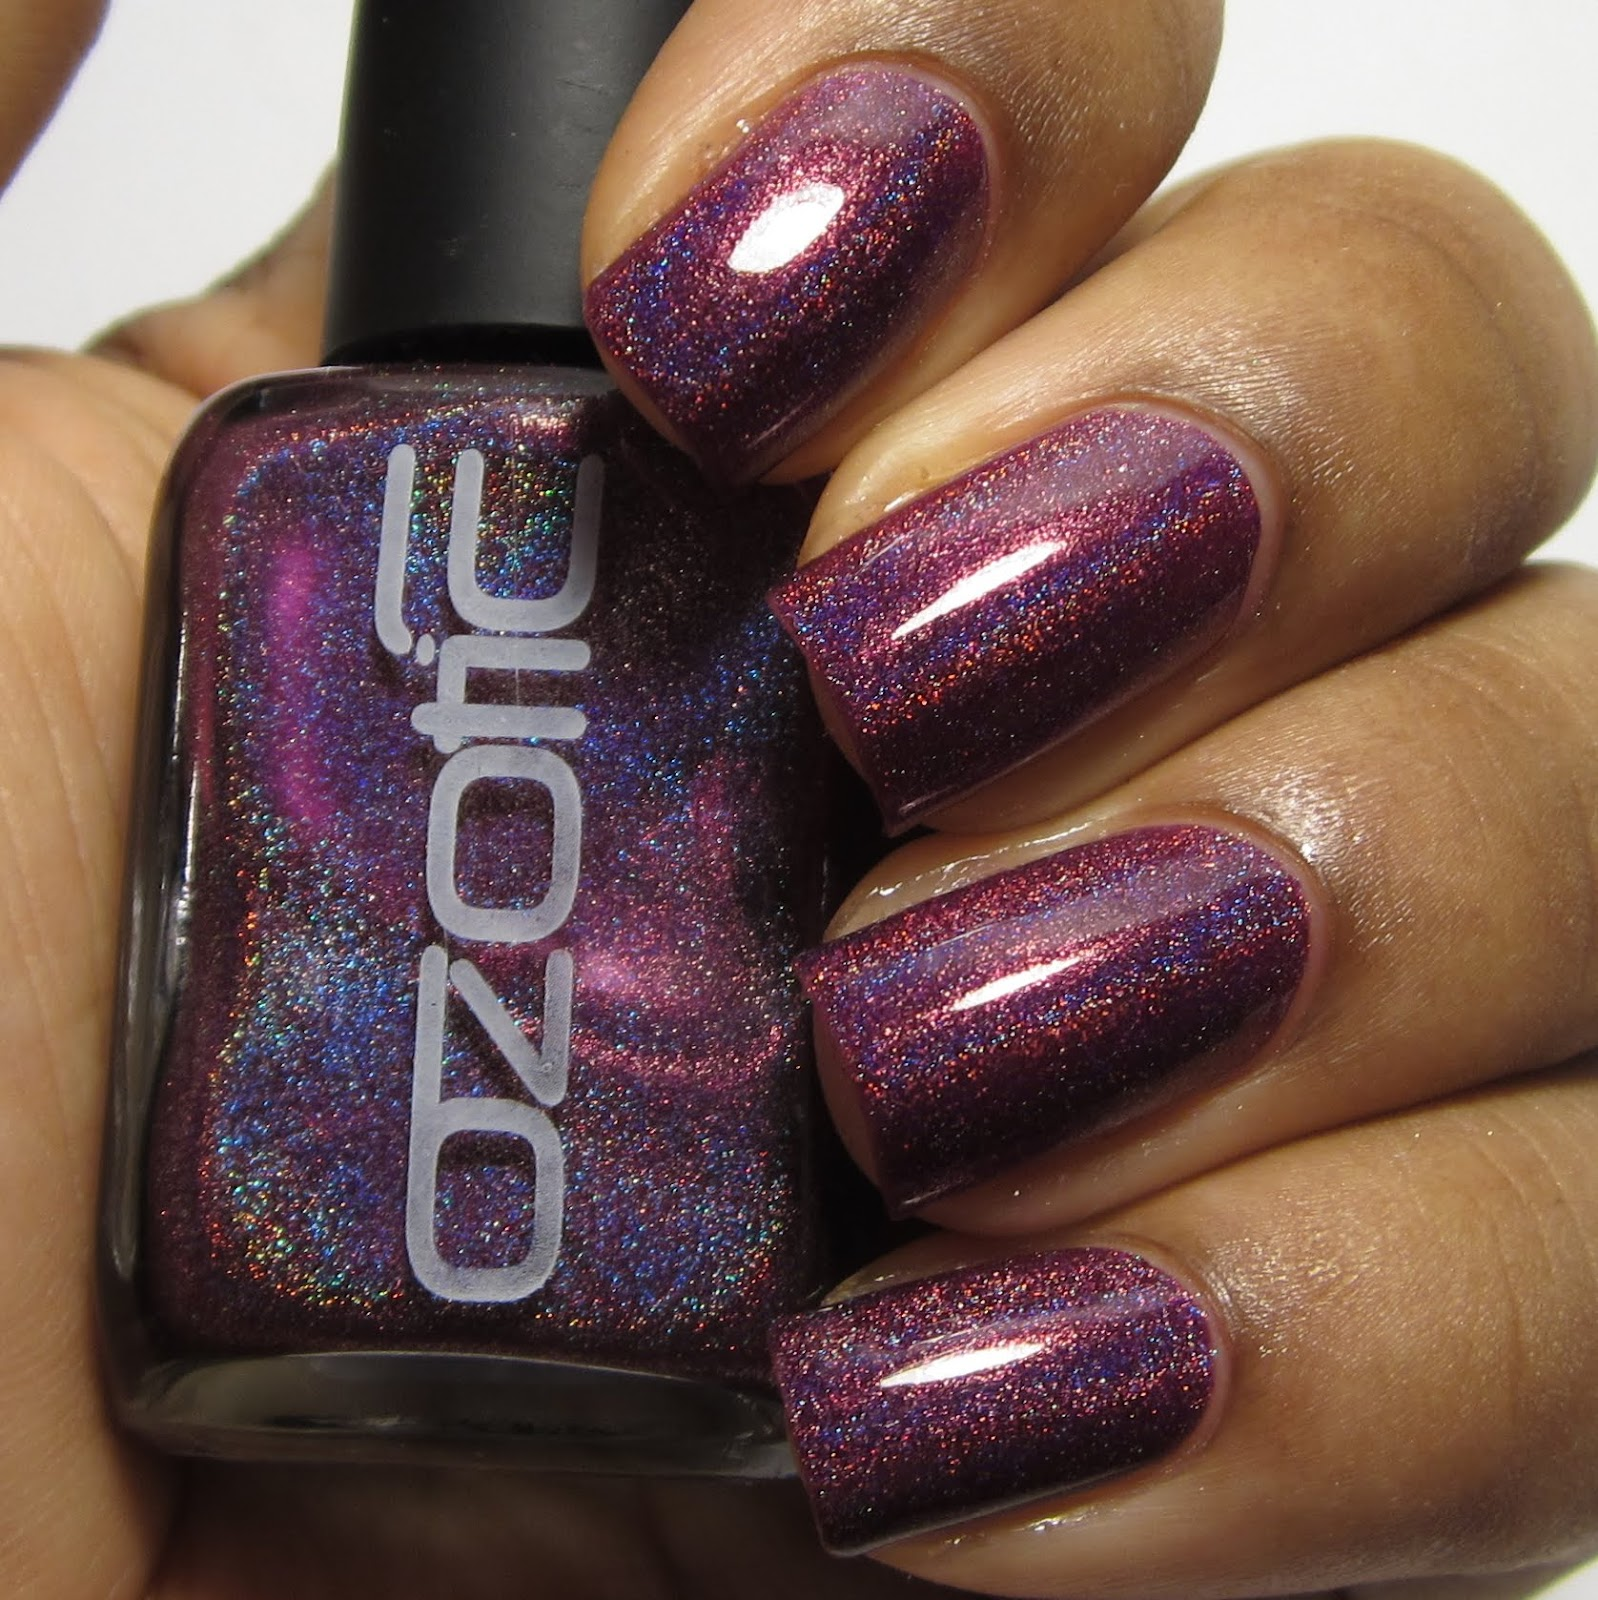 Ozotic Pro 513 holo nail polish swatch